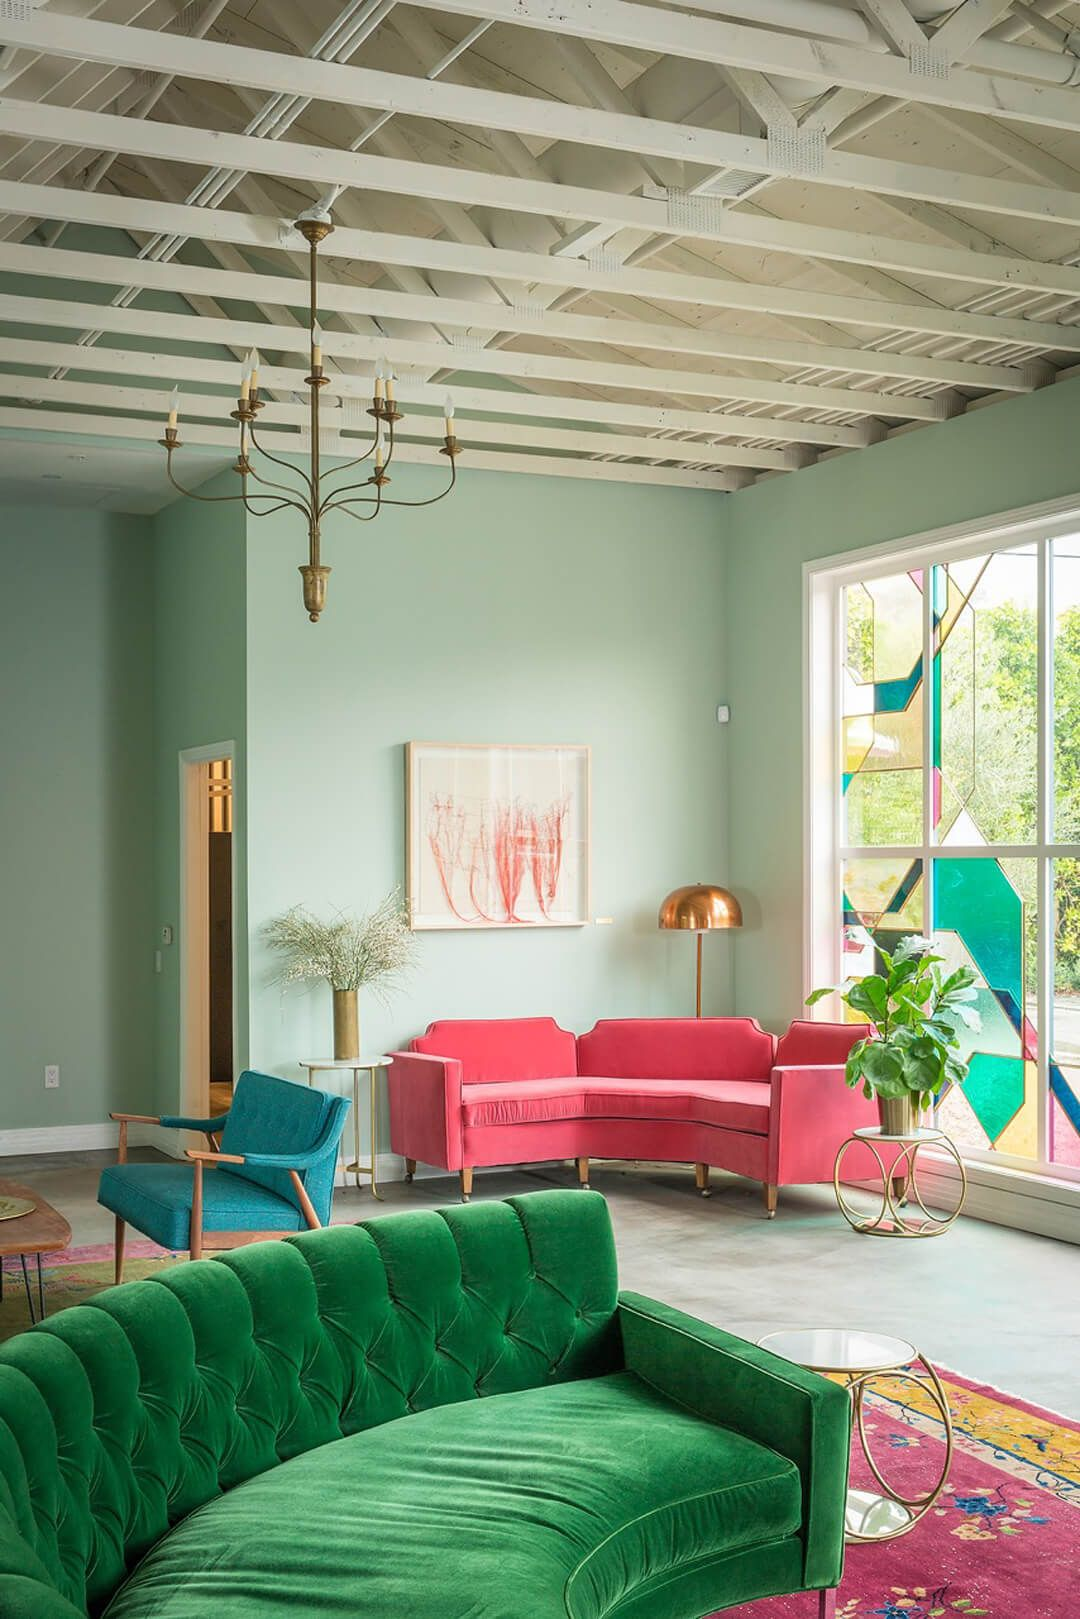 14 calming colors soothing and relaxing paint colors for every room rh housebeautiful com